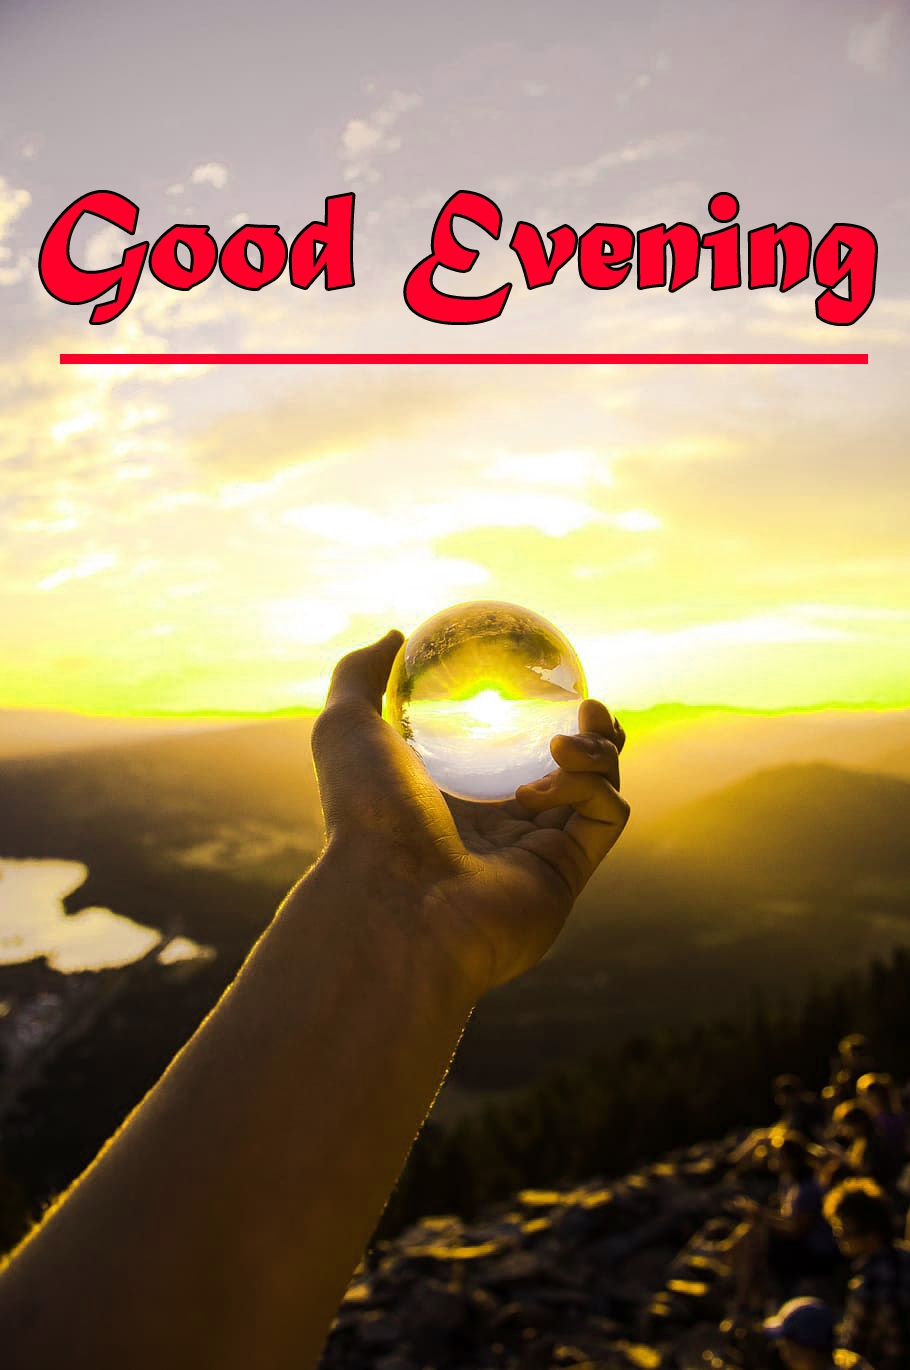 Good Evening Wishes Wallpaper for Whatsapp